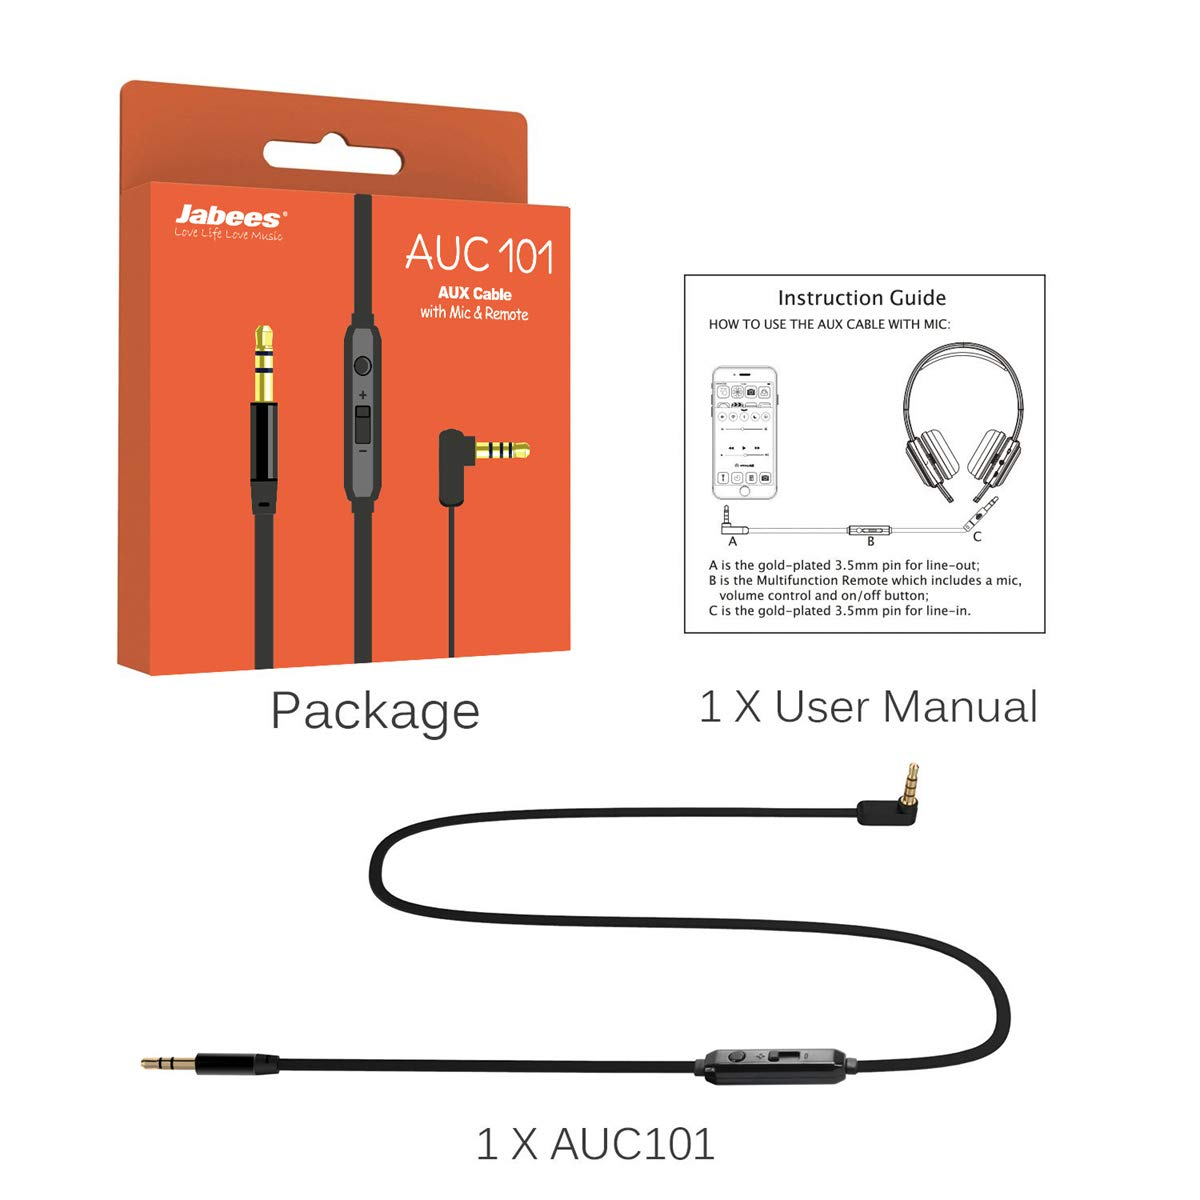 Aux Cord 3.5mm 3ft with Mic and Volume Control Aux Audio Cable for Connect Gaming Headphones/Headsets with Xbox/P4P│Male to Male Replacement Cord for Music and Voice Streaming for Cellphone